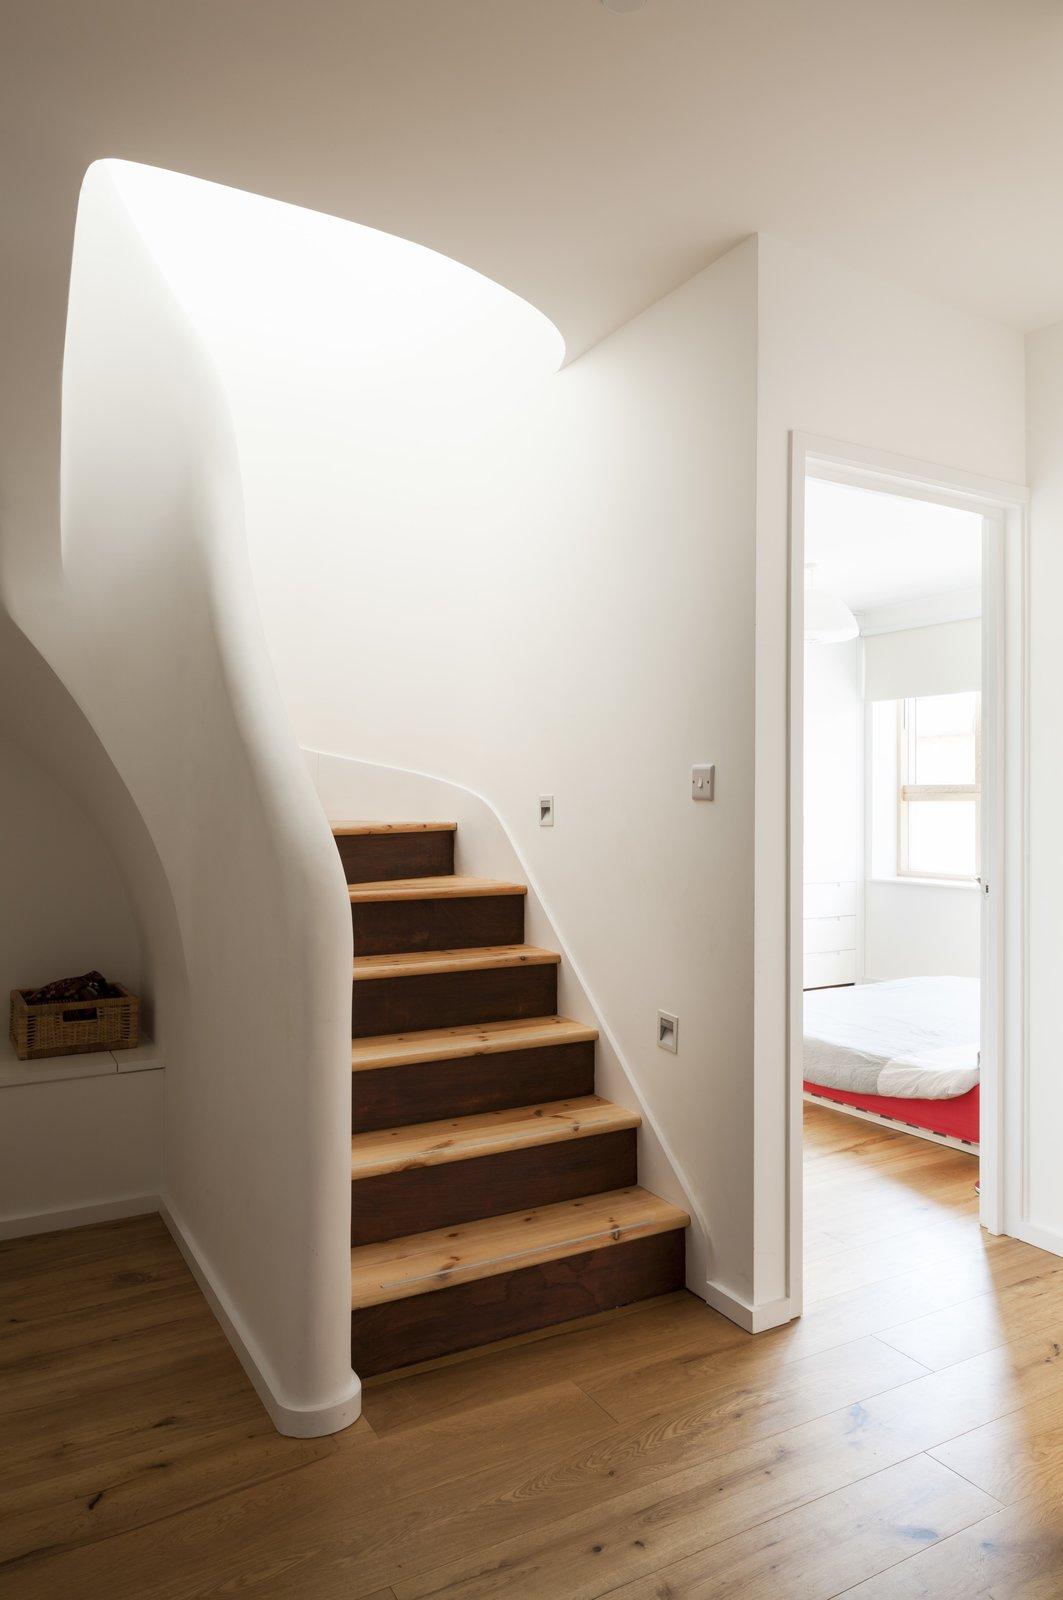 The central staircase is a key element of the scheme. With the bedrooms and bathroom located on the entrance level, it was crucial to create an intuitive and inviting flow up toward the more social areas. On the upper floor, the central staircase divides and defines an otherwise open plan.